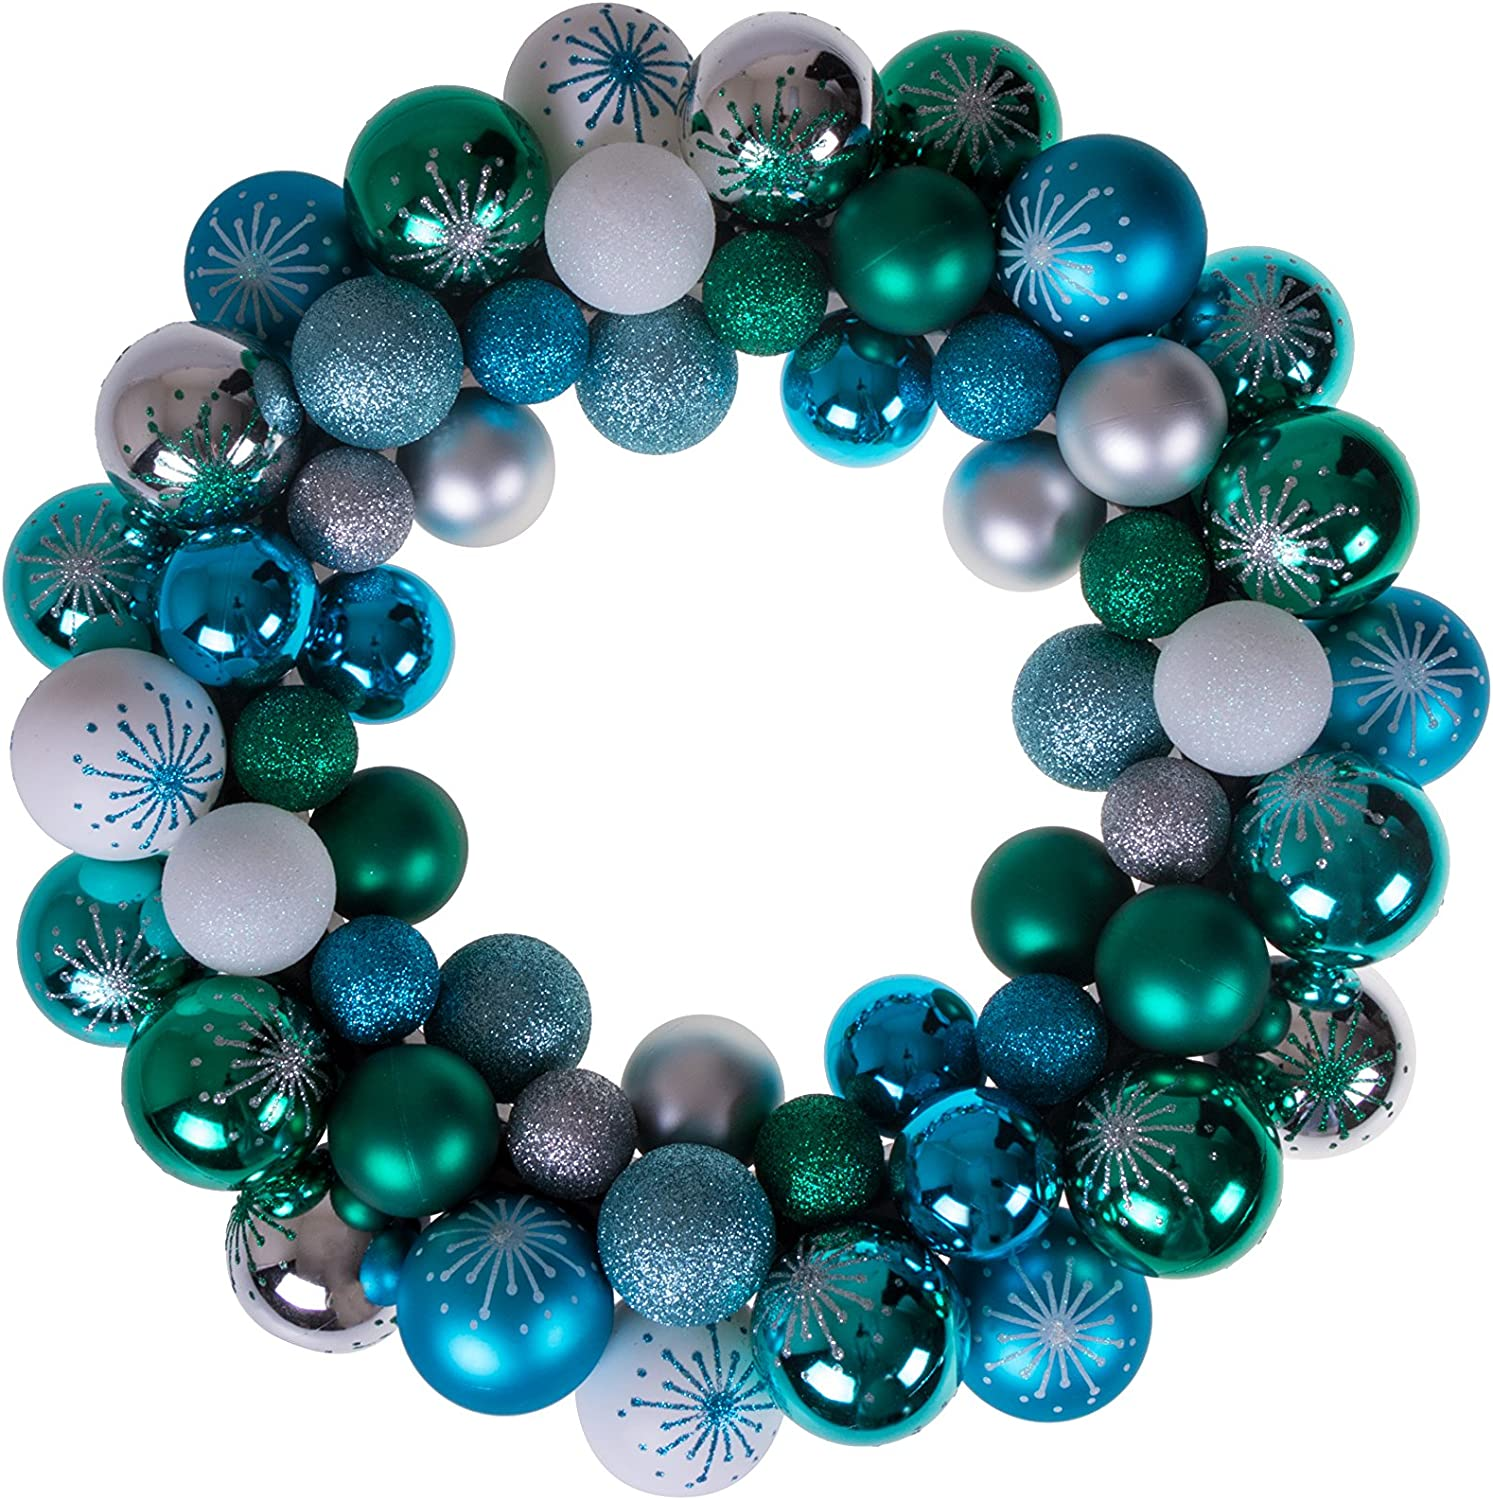 Clever Creations Christmas Ornament Wreath Blue Green White Silver Festive Holiday Décor Classic Theme Lightweight Shatter Resistant Home Kitchen